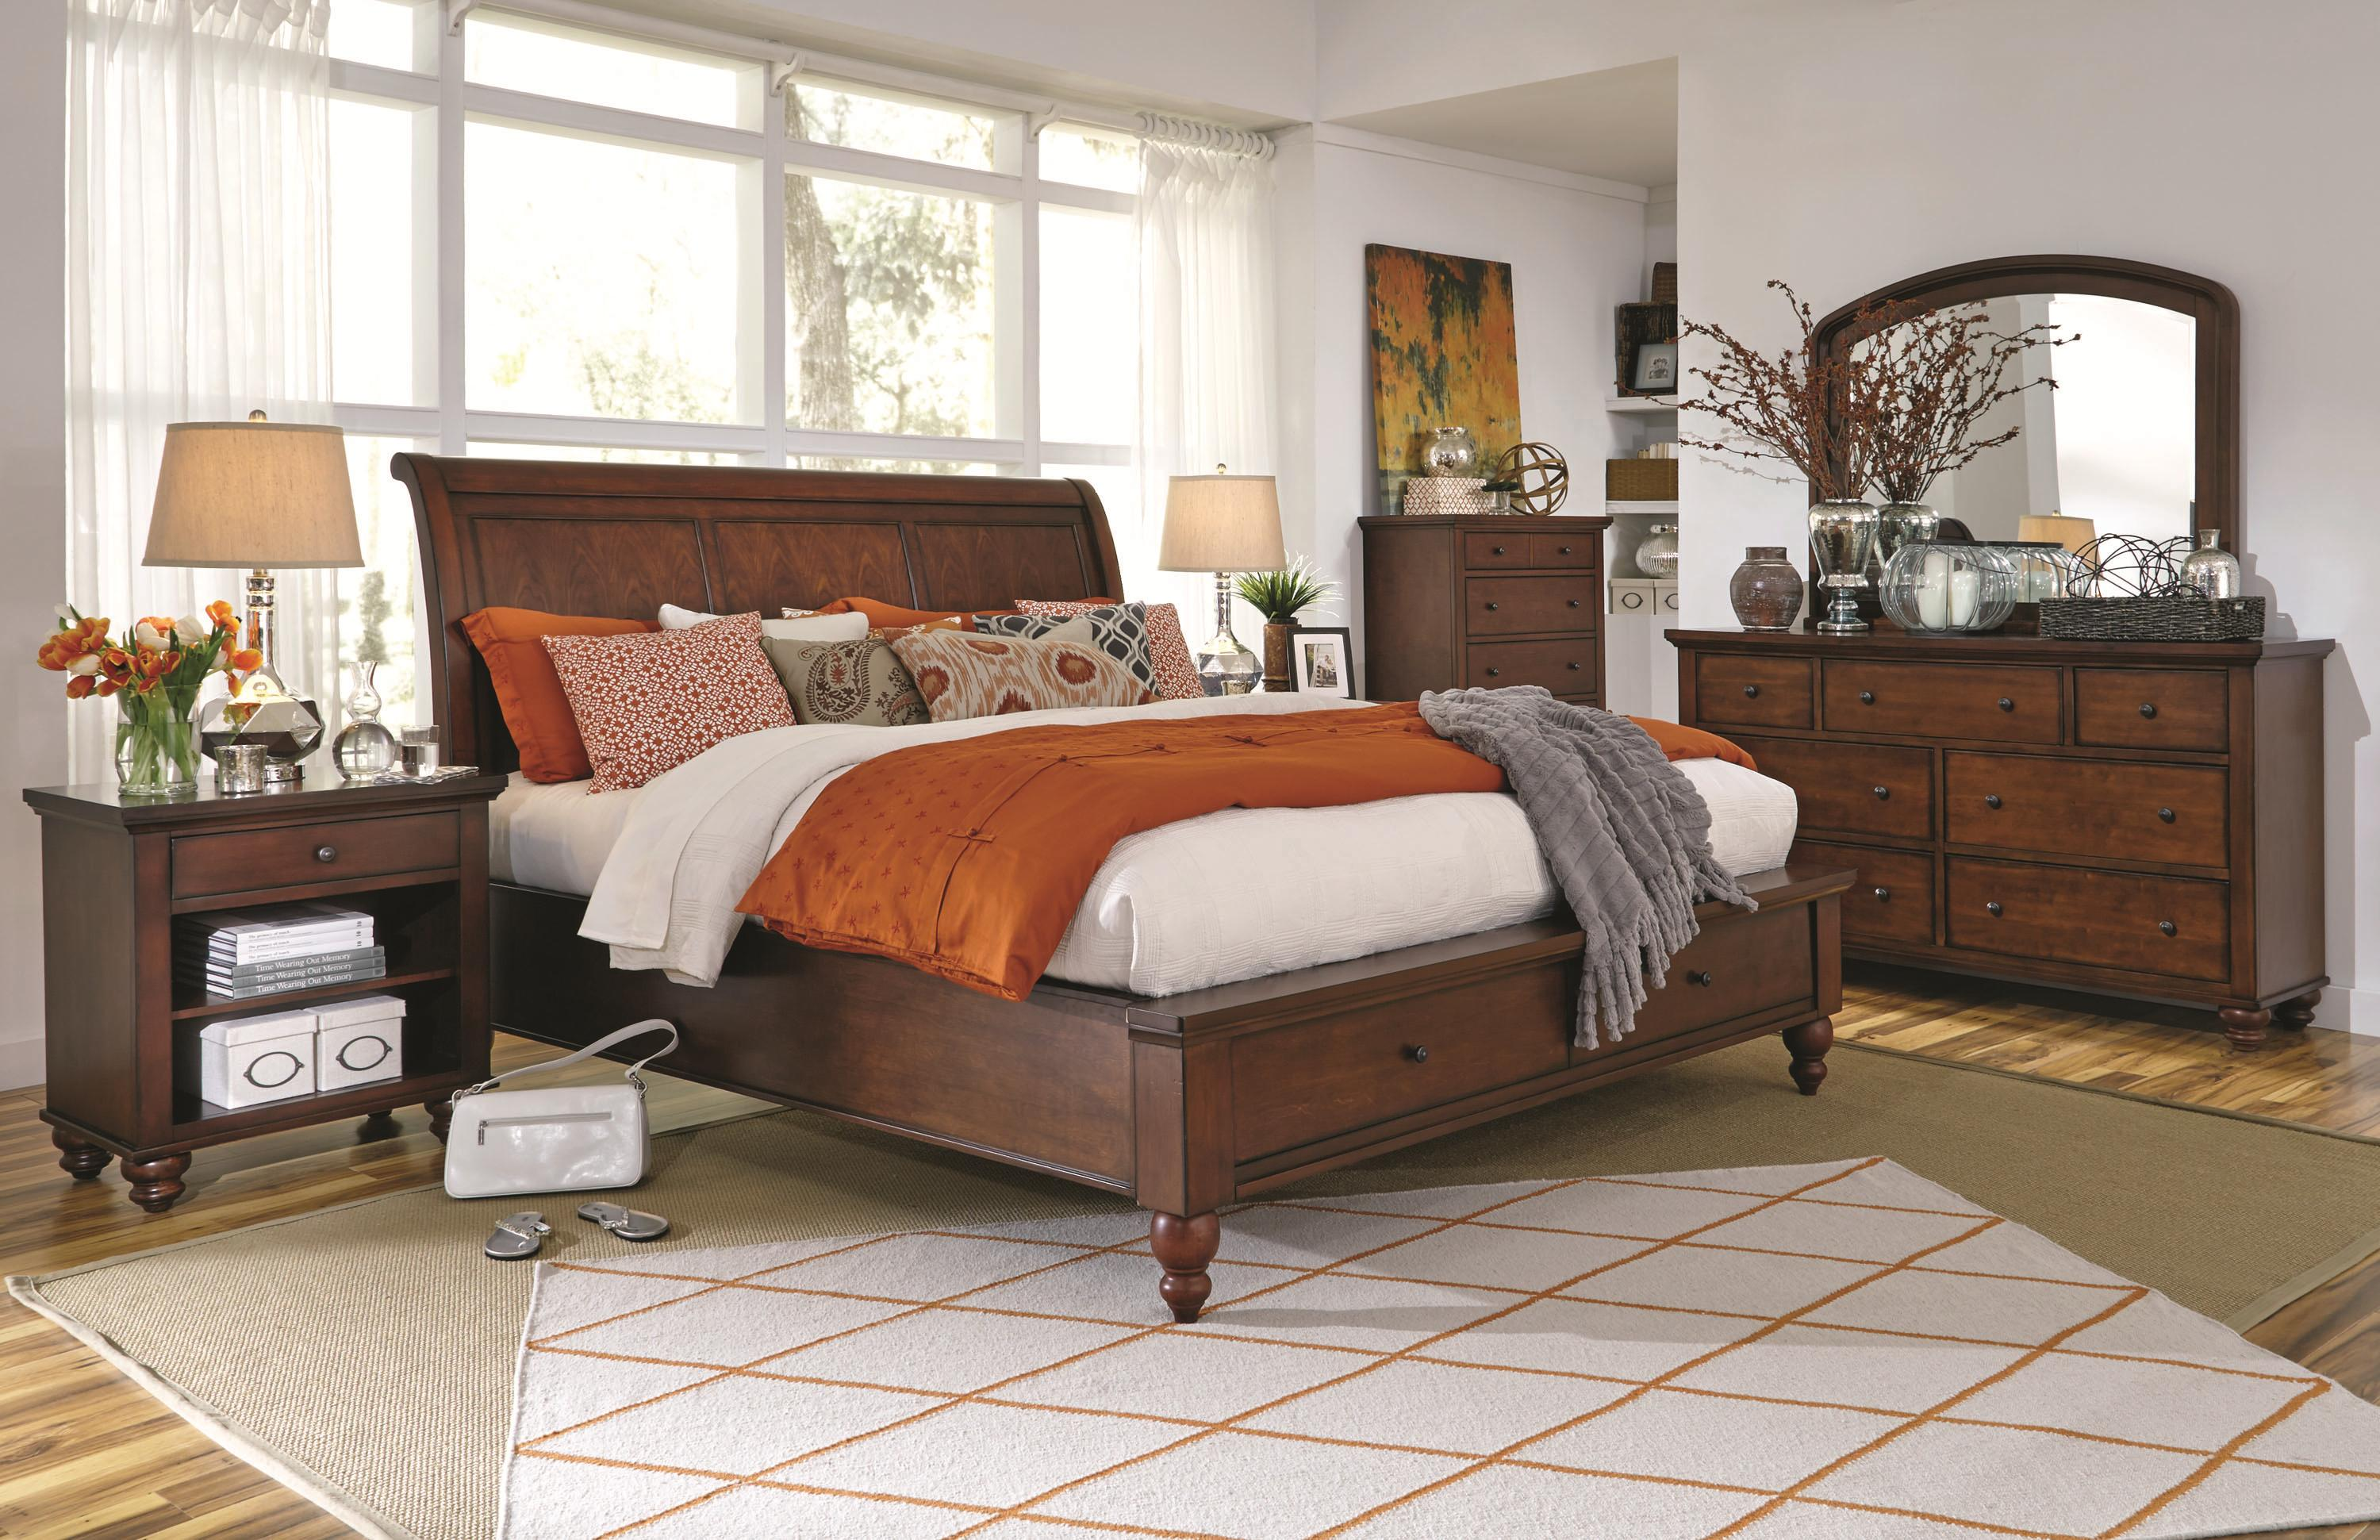 Aspenhome cambridge queen size bed with sleigh headboard drawer storage footboard darvin Home furniture queen size bed